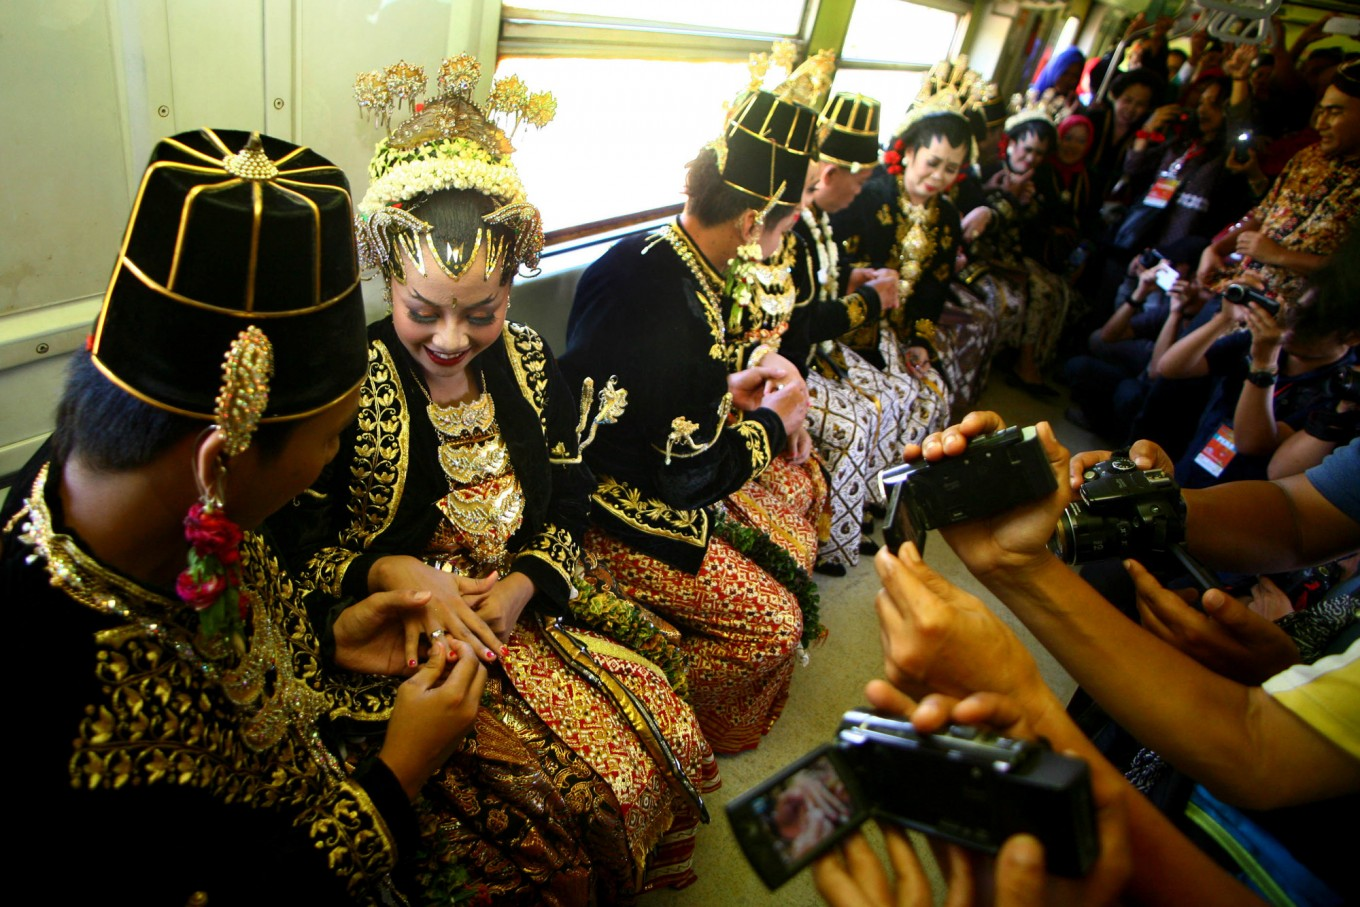 Couples put rings on their respective spouses onboard the Prambanan Express after exchanging vows at a mass wedding event in Yogyakarta on Sept. 6. JP/ Aditya Sagita